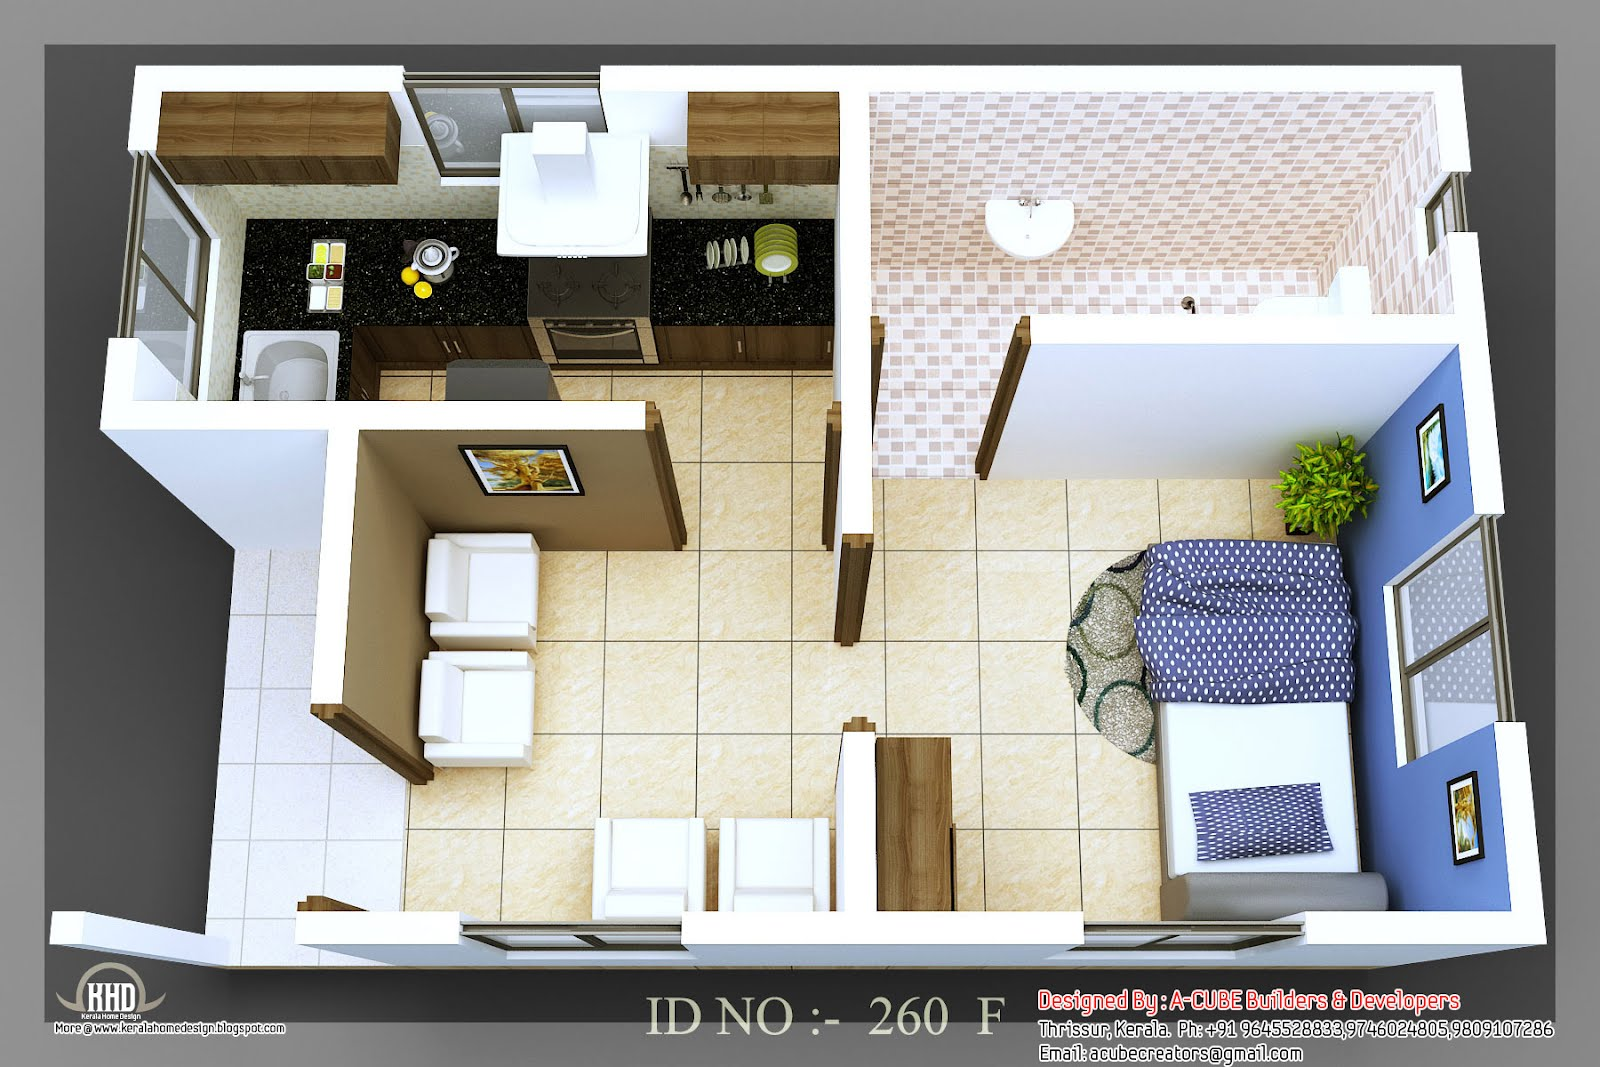 3d isometric views of small house plans home appliance 3d design